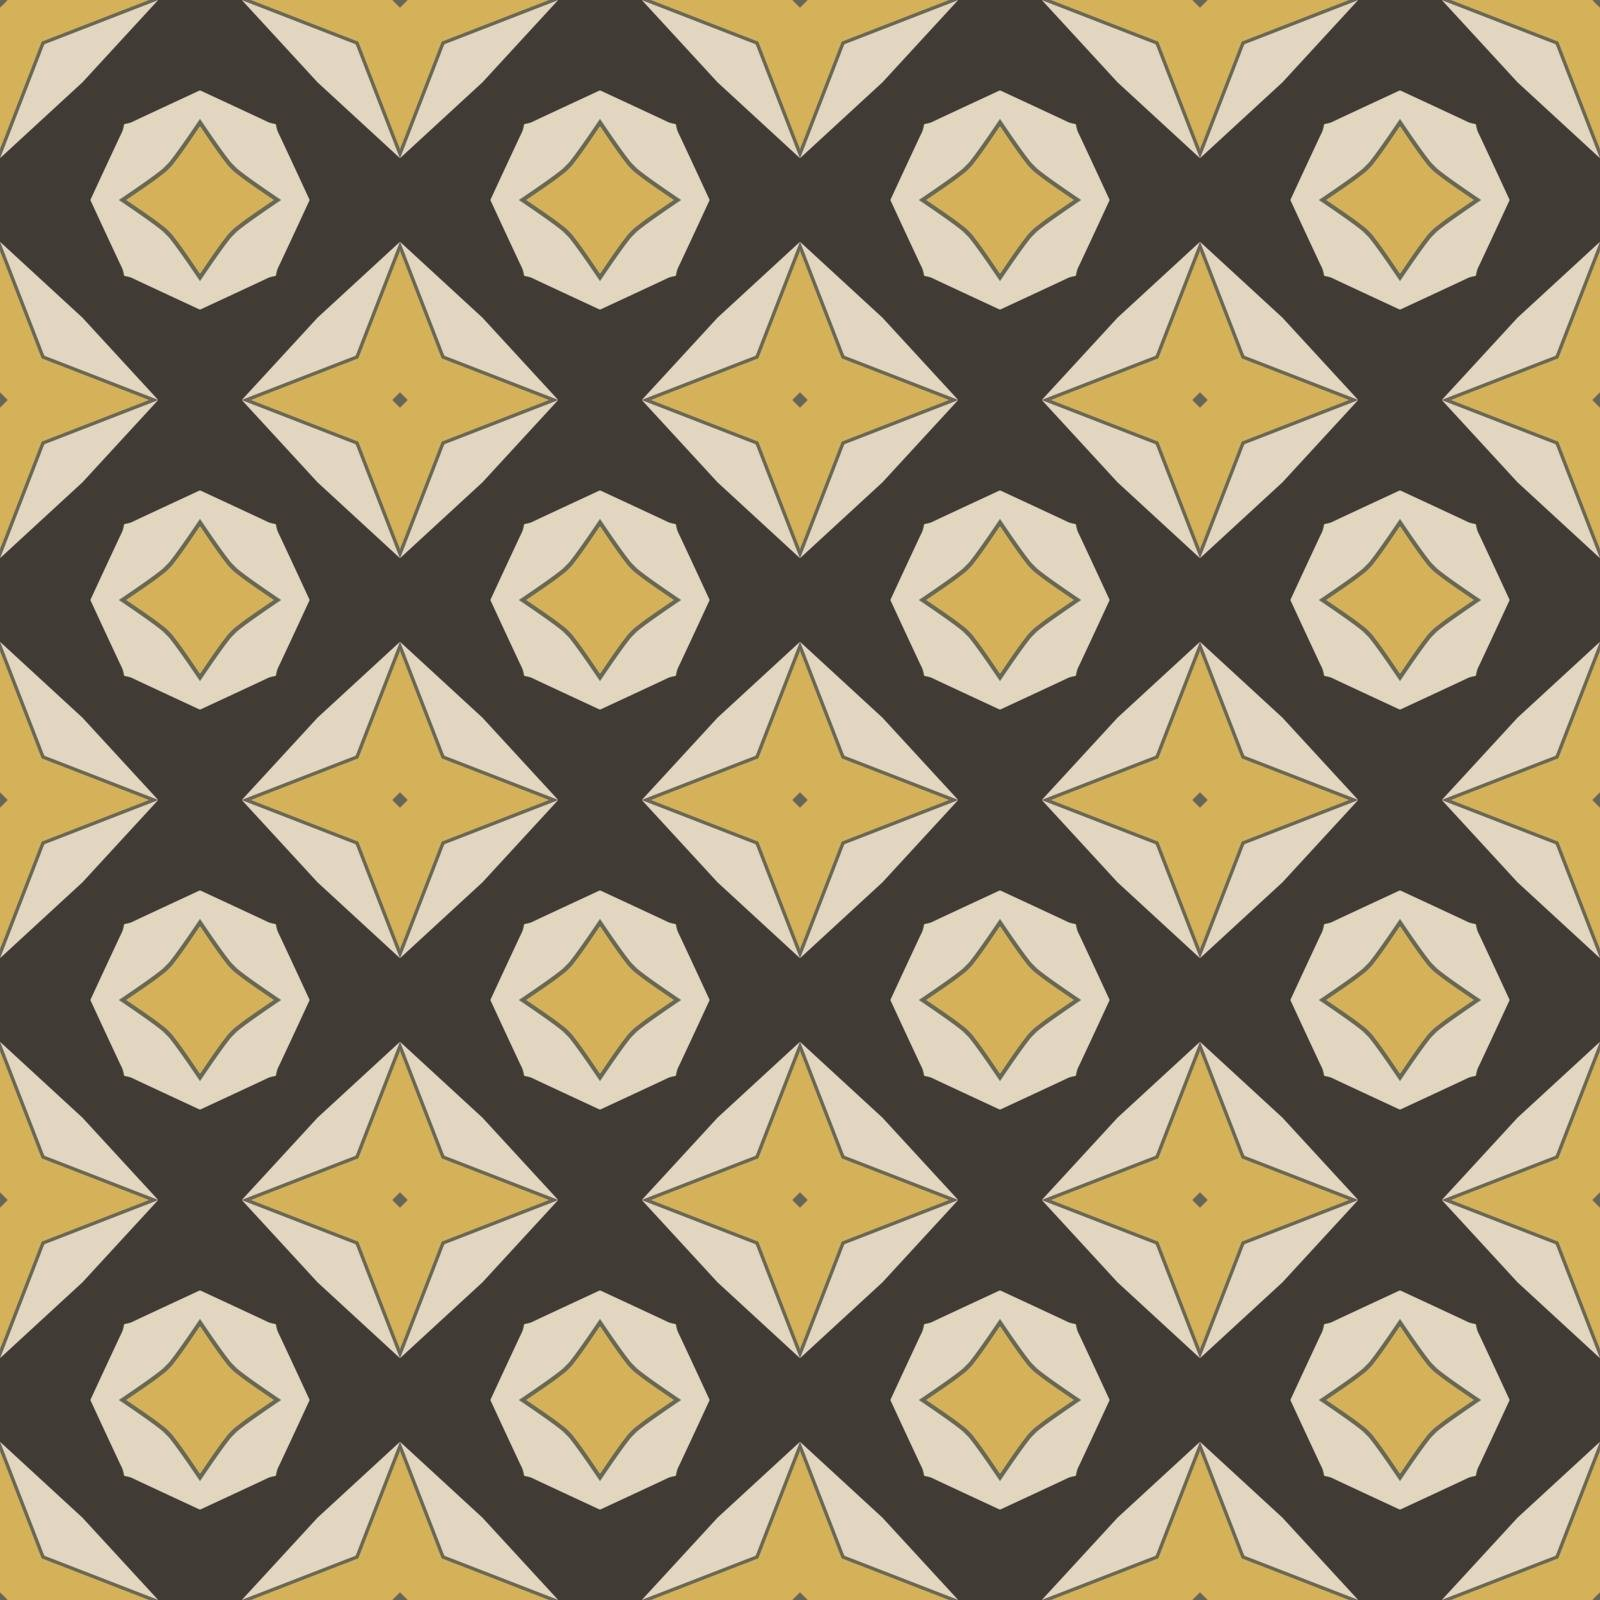 Seamless illustrated pattern made of abstract elements in beige, yellow, gray and black